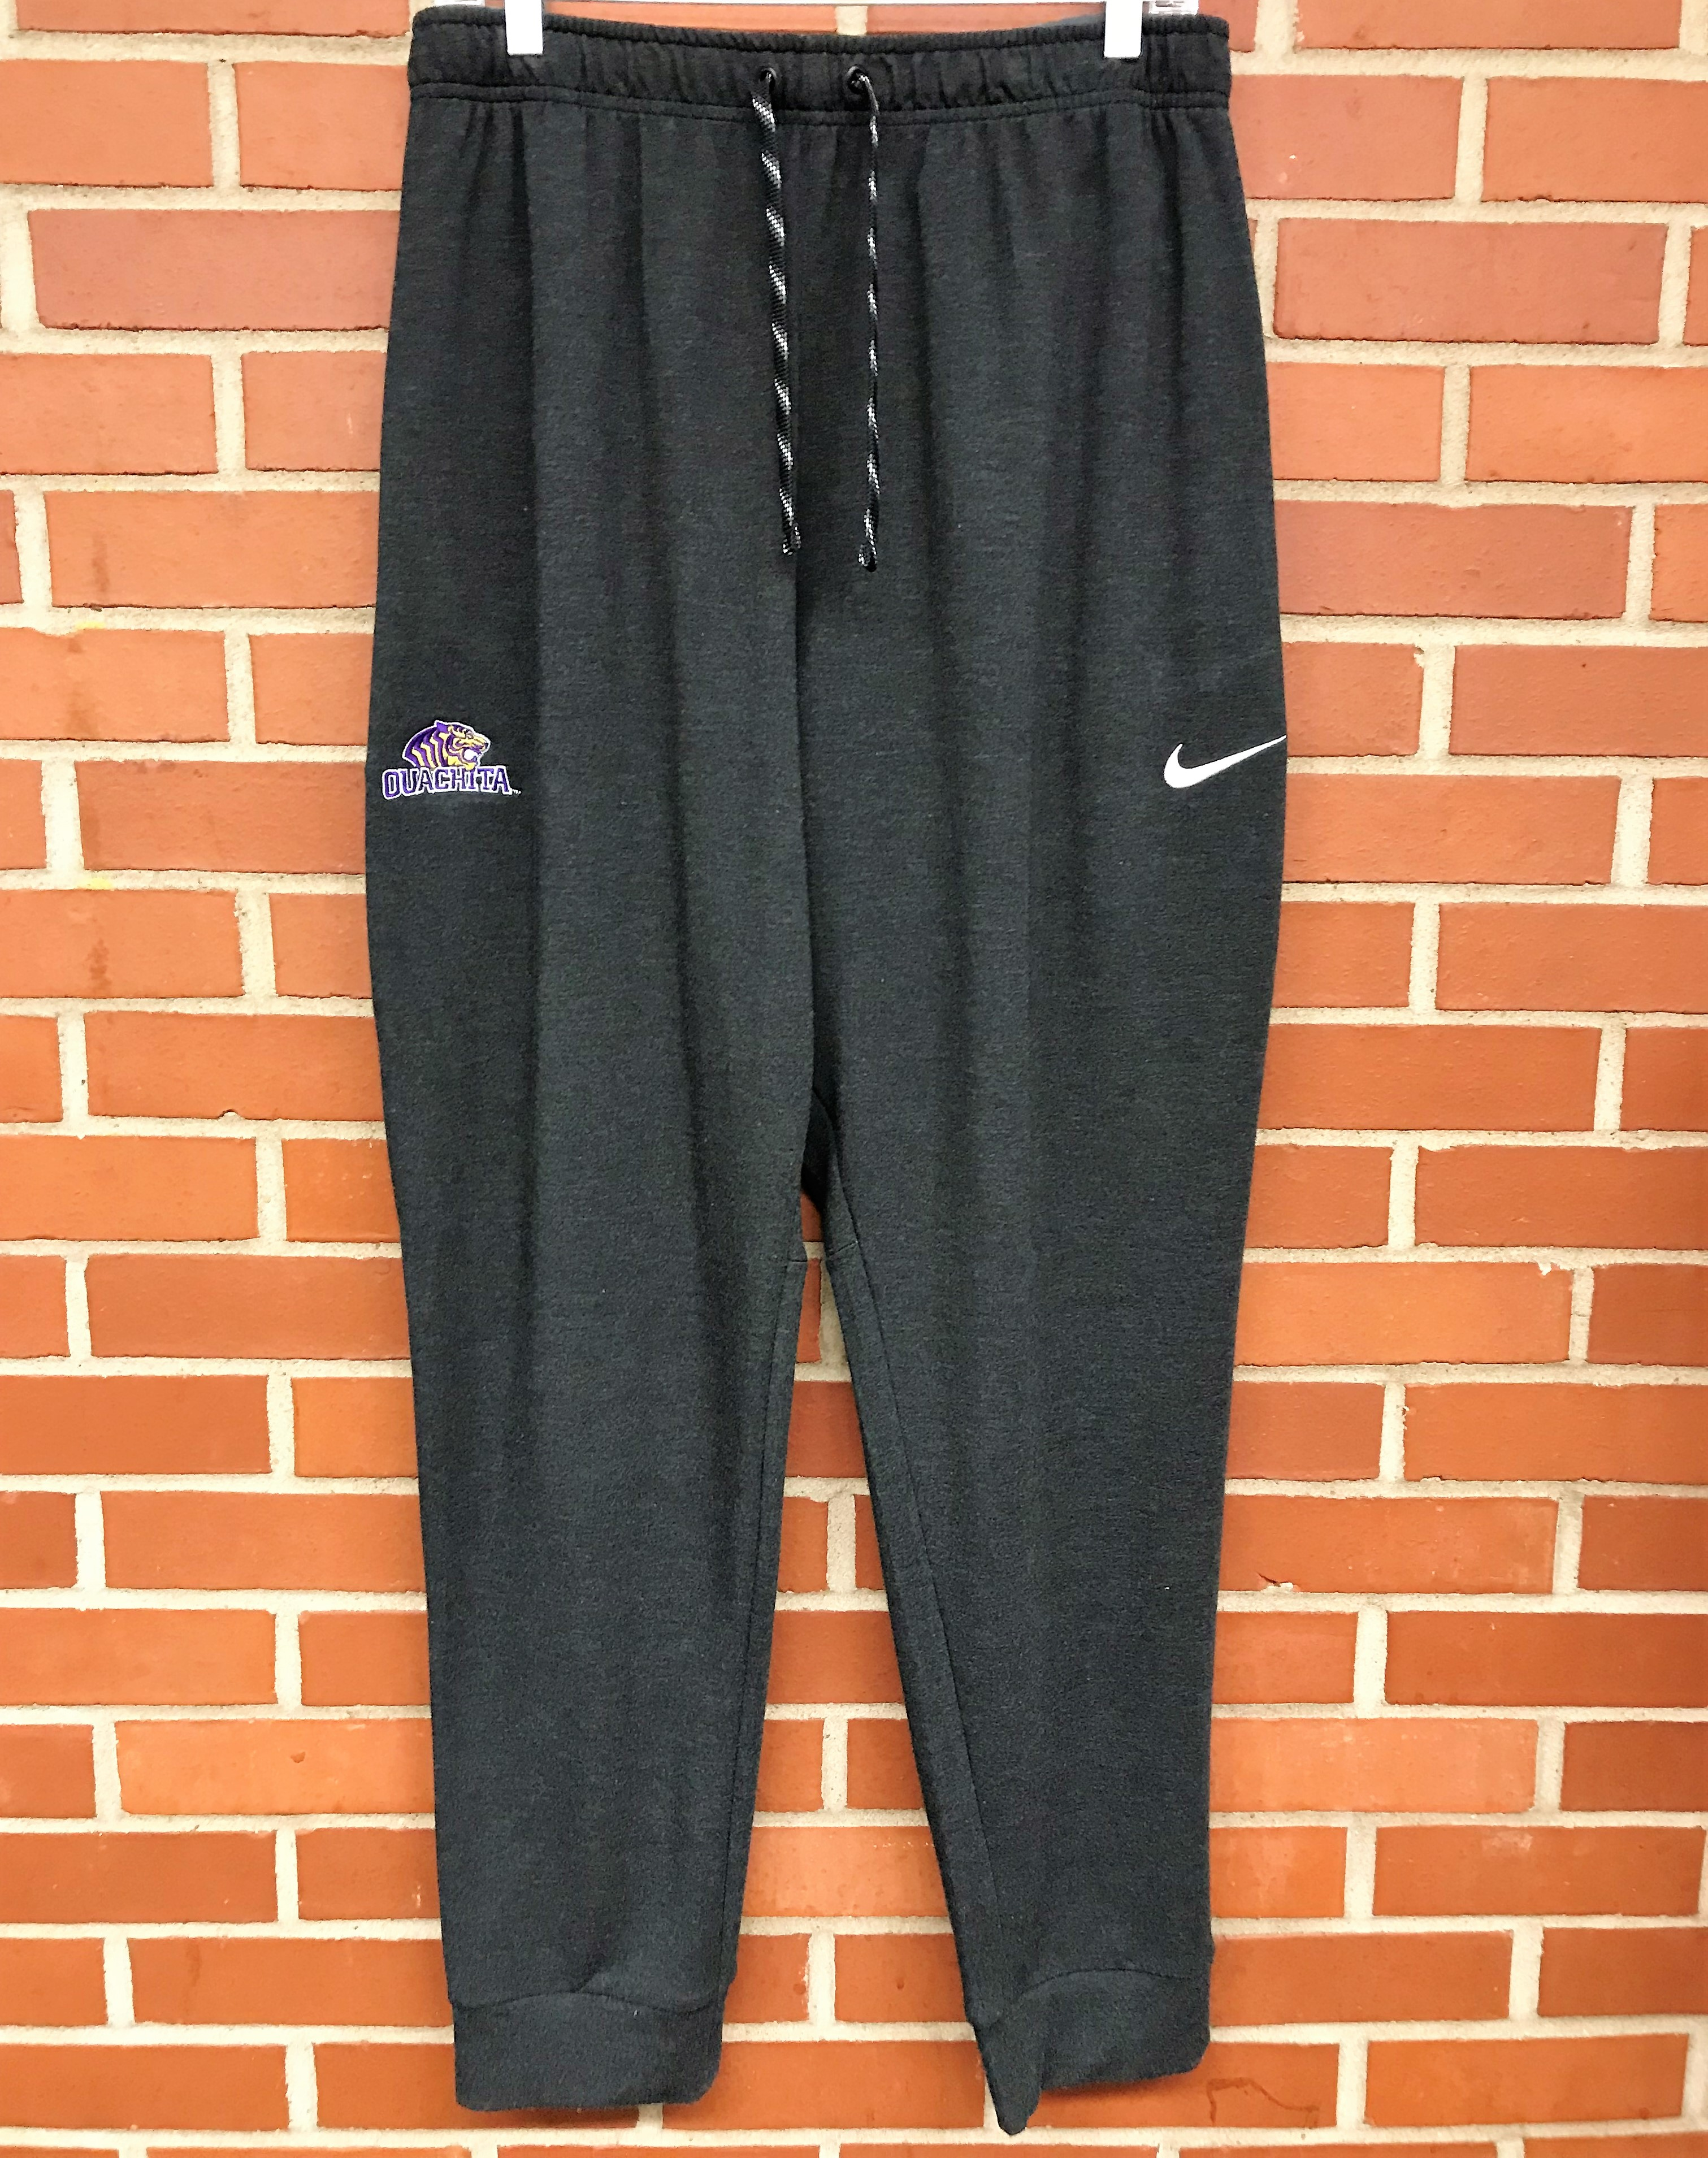 OUACHITA DRIFIT FLEECE PANT